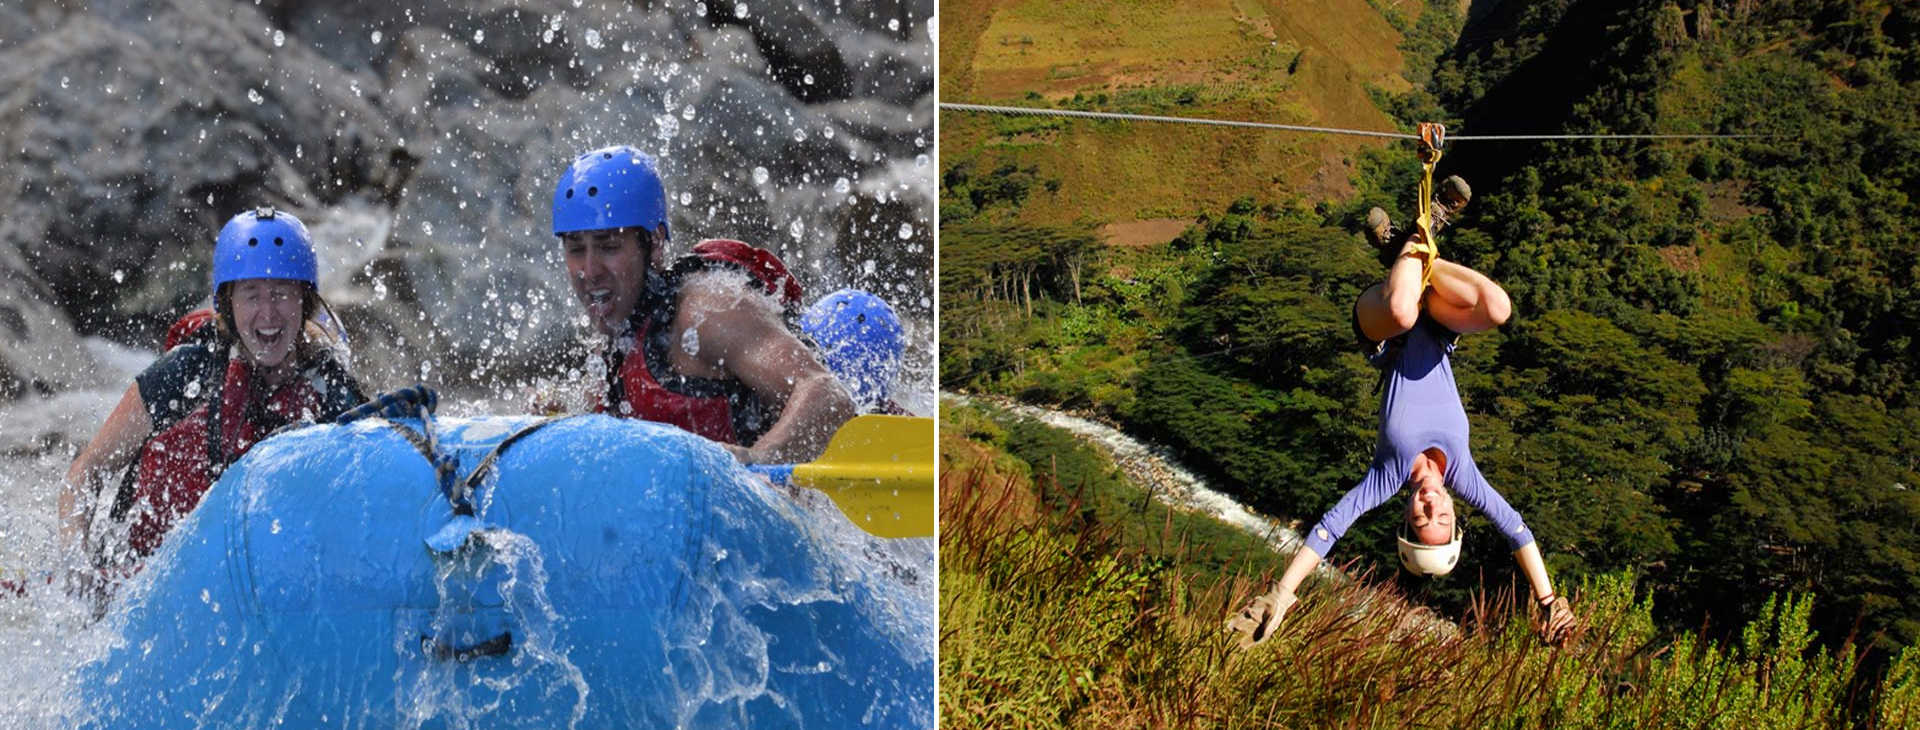 Inka Jungle Trek Zip Line Rafting 4 days - Inka Jungle Treks